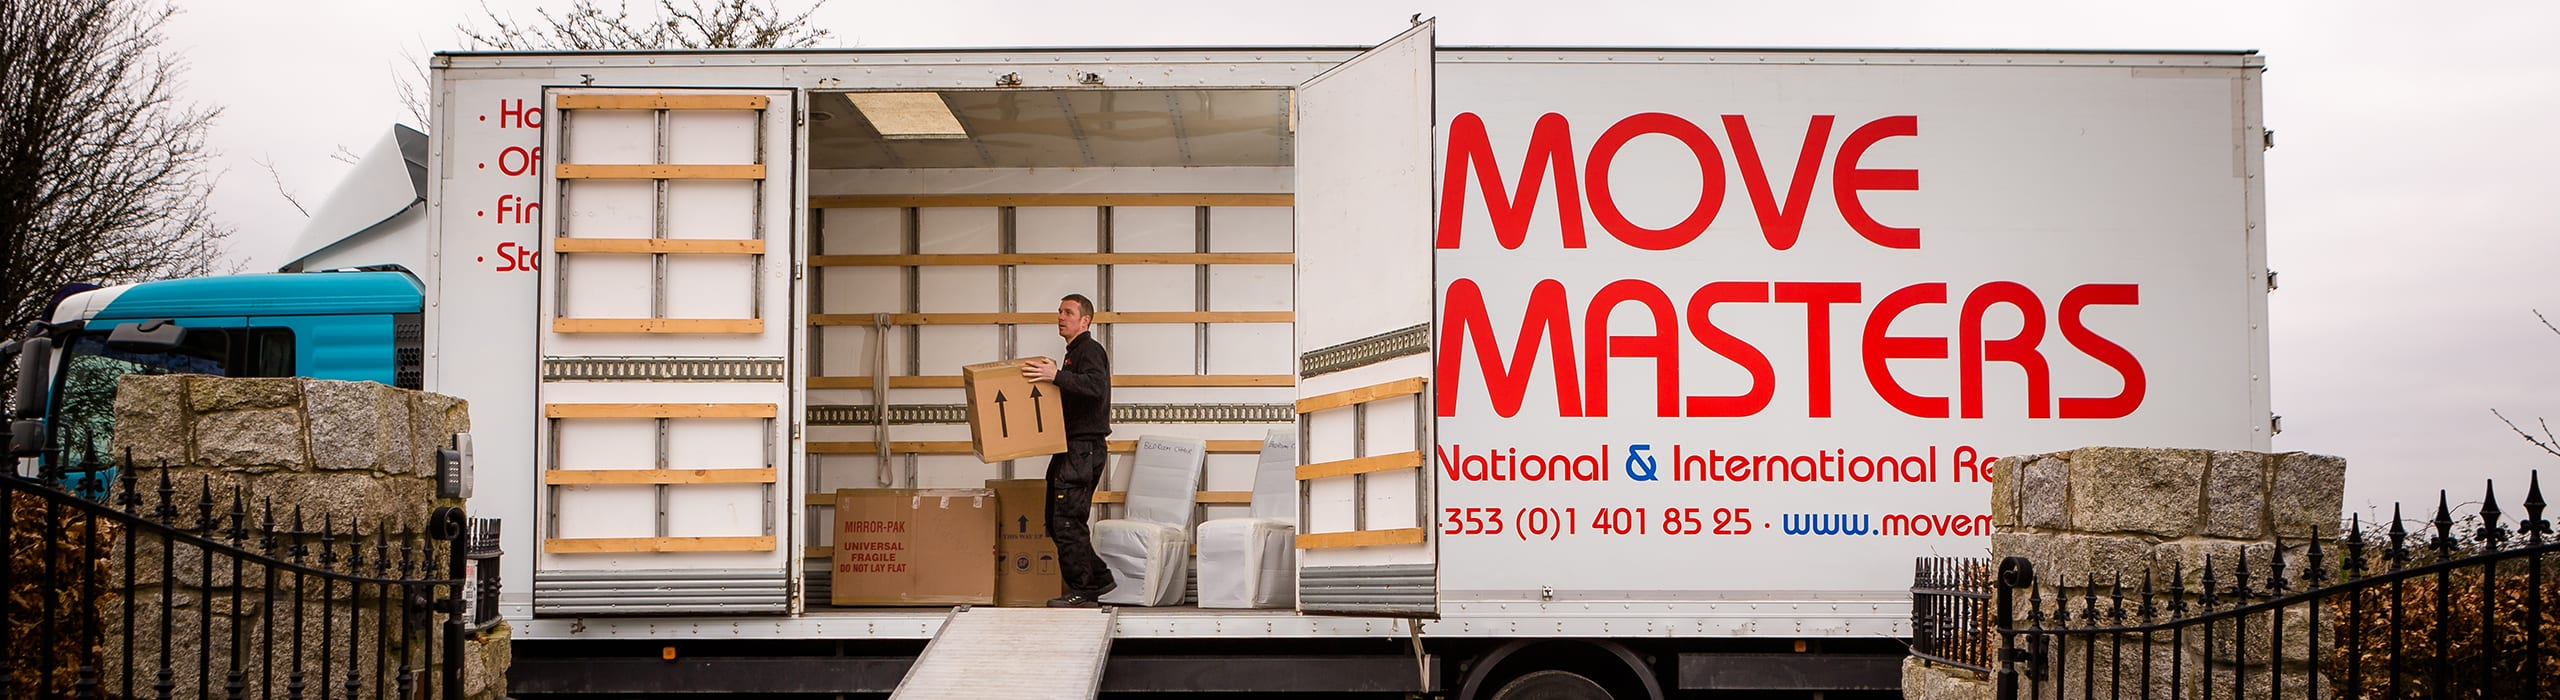 Move Masters - Corporate | Commercial | Private Relocation